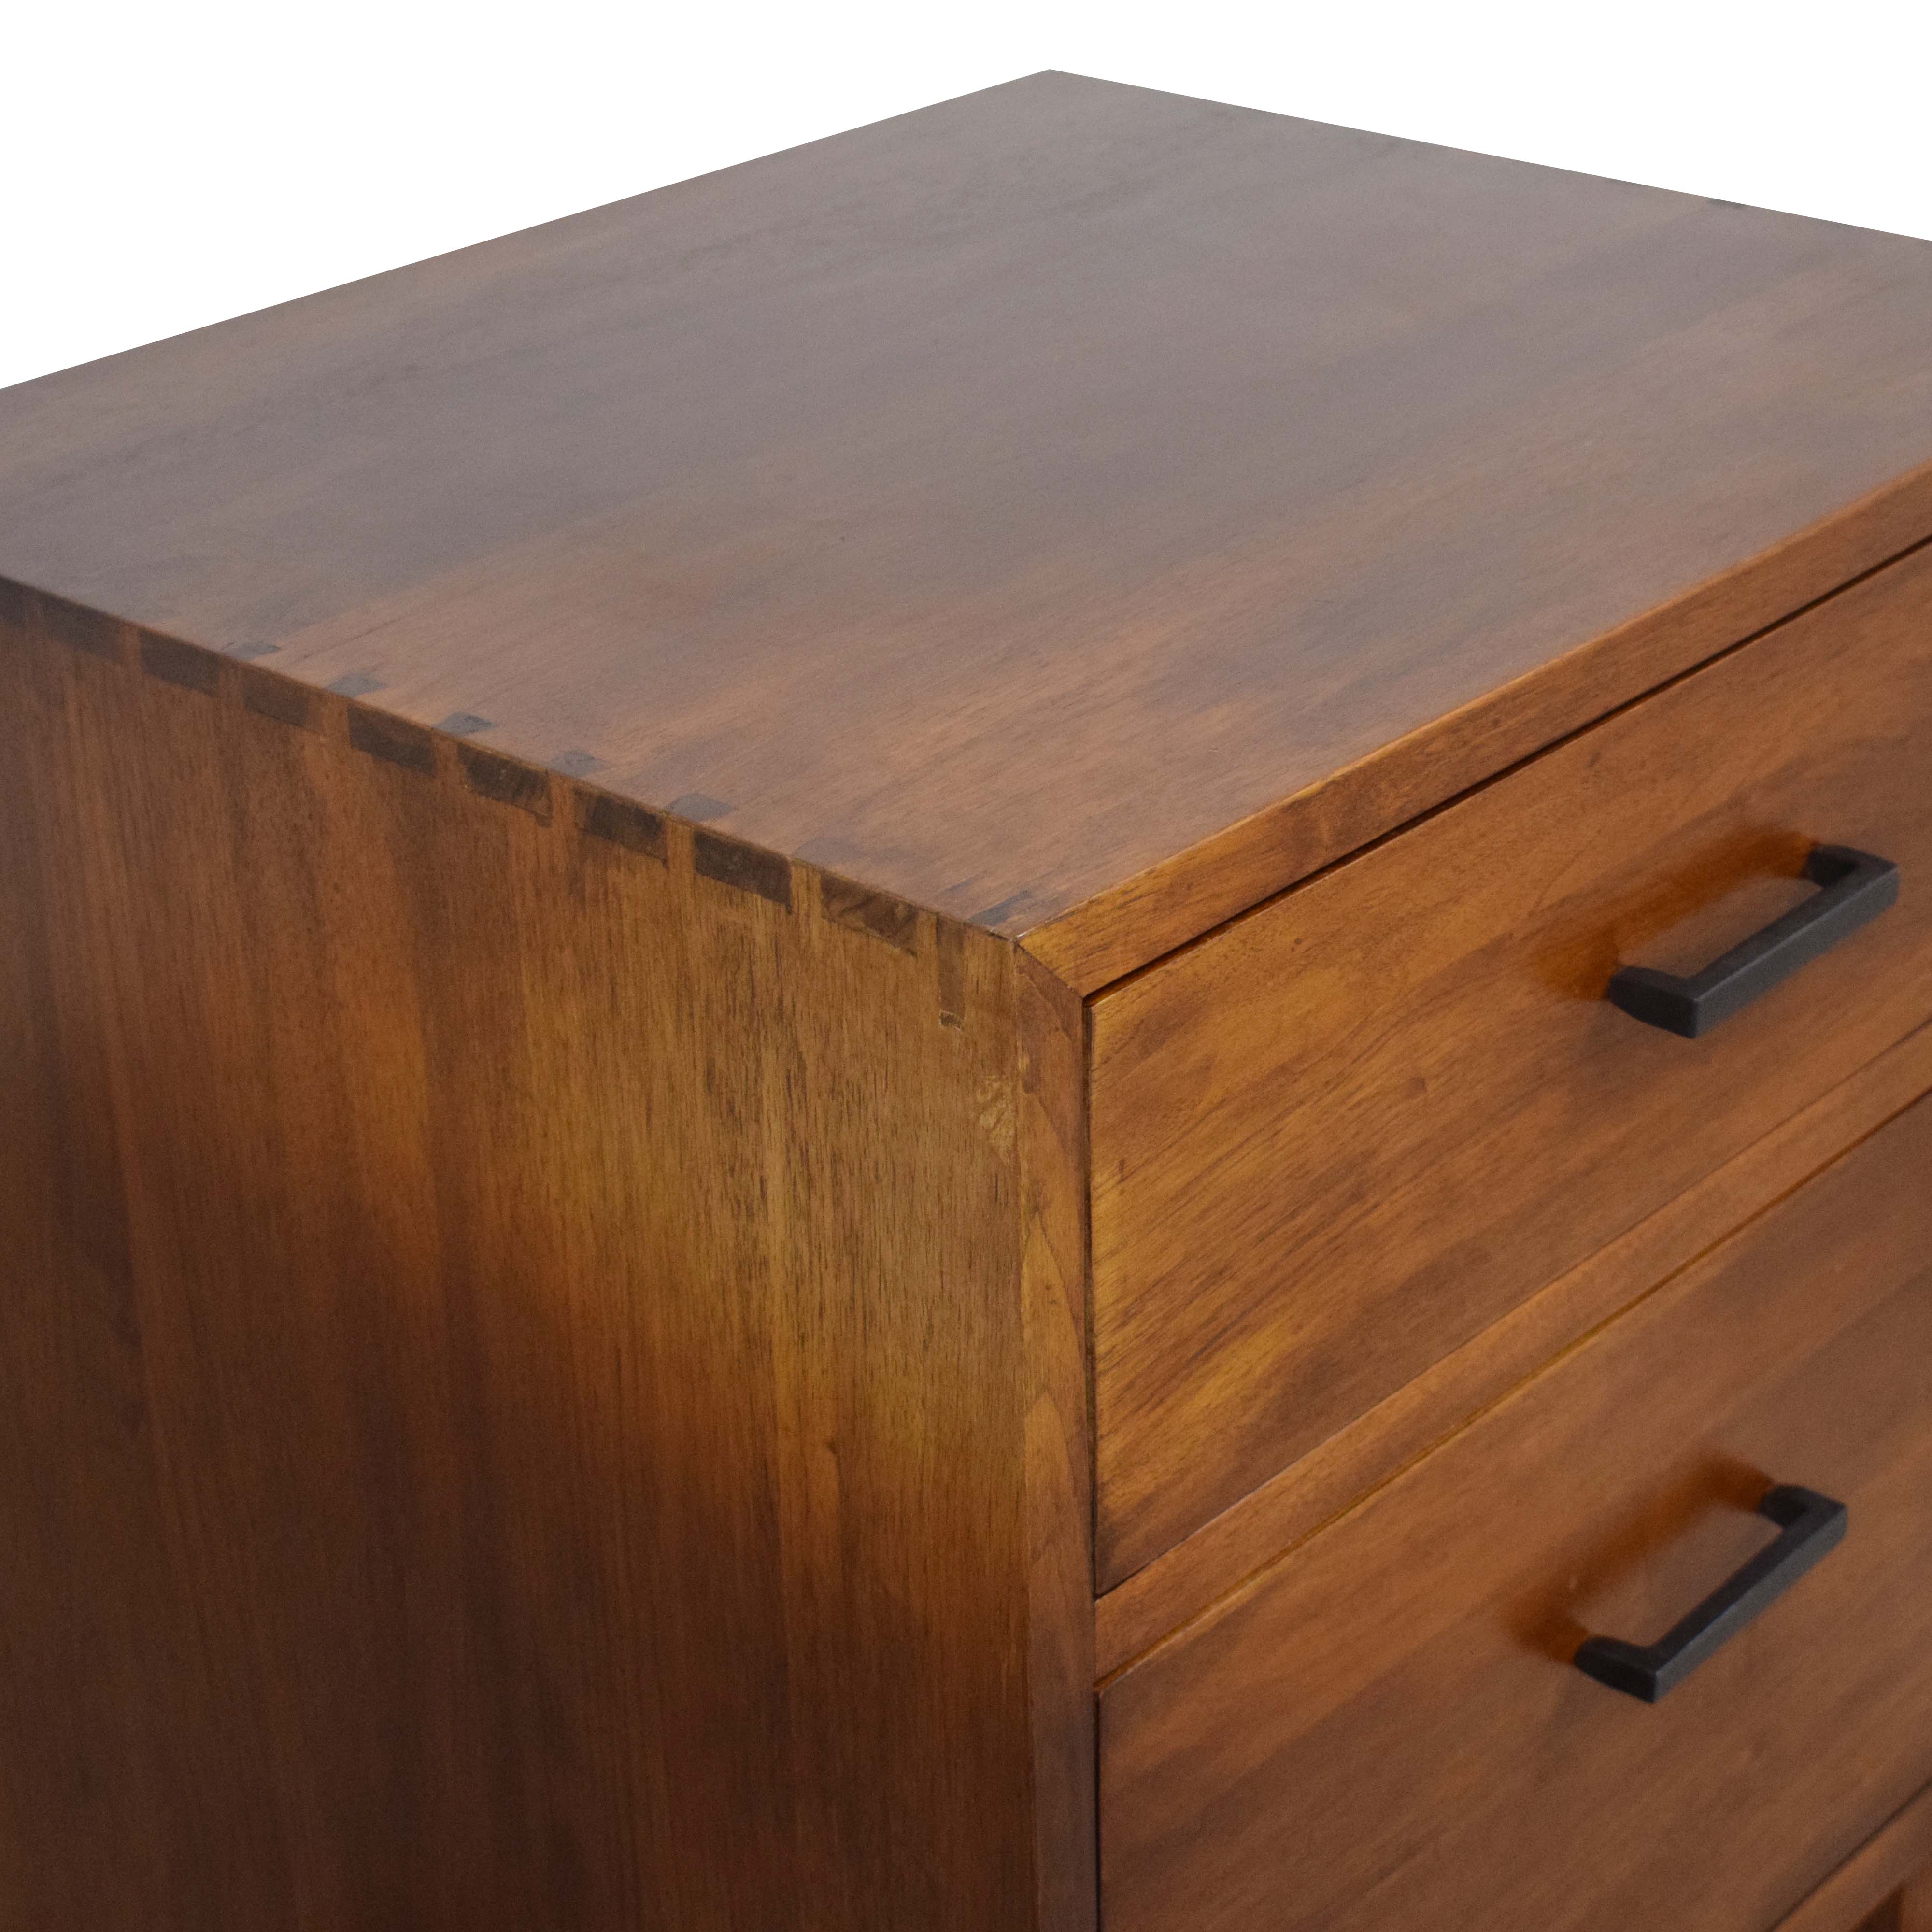 Pottery Barn Pottery Barn Two Drawer File Cabinet